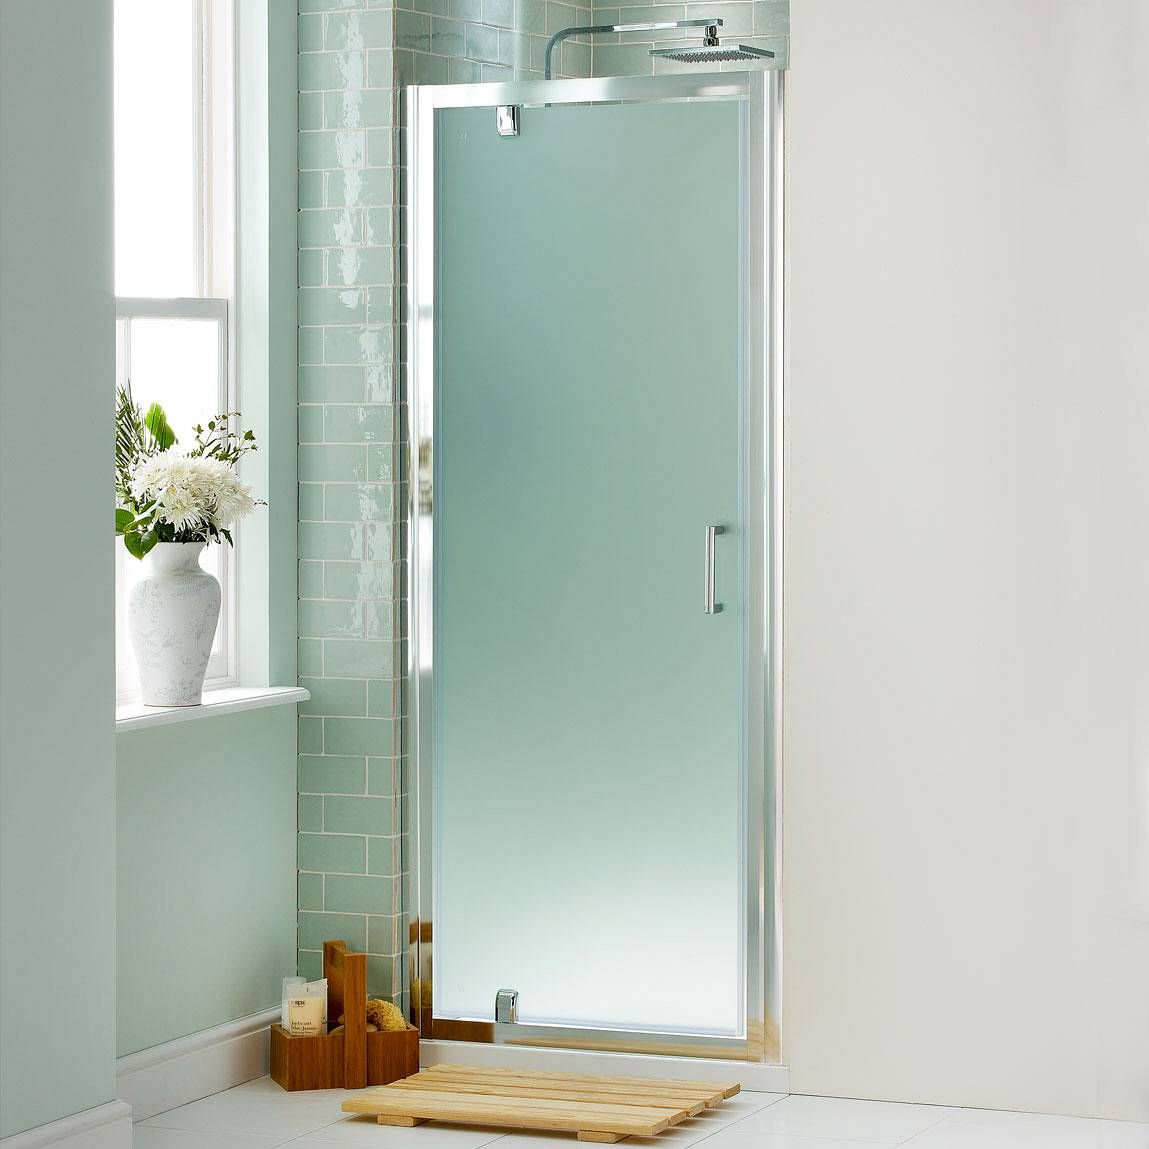 Interior glass door bathroom - Places For Your Frosted Glass Door Http Thehomeknowitall Com 2015